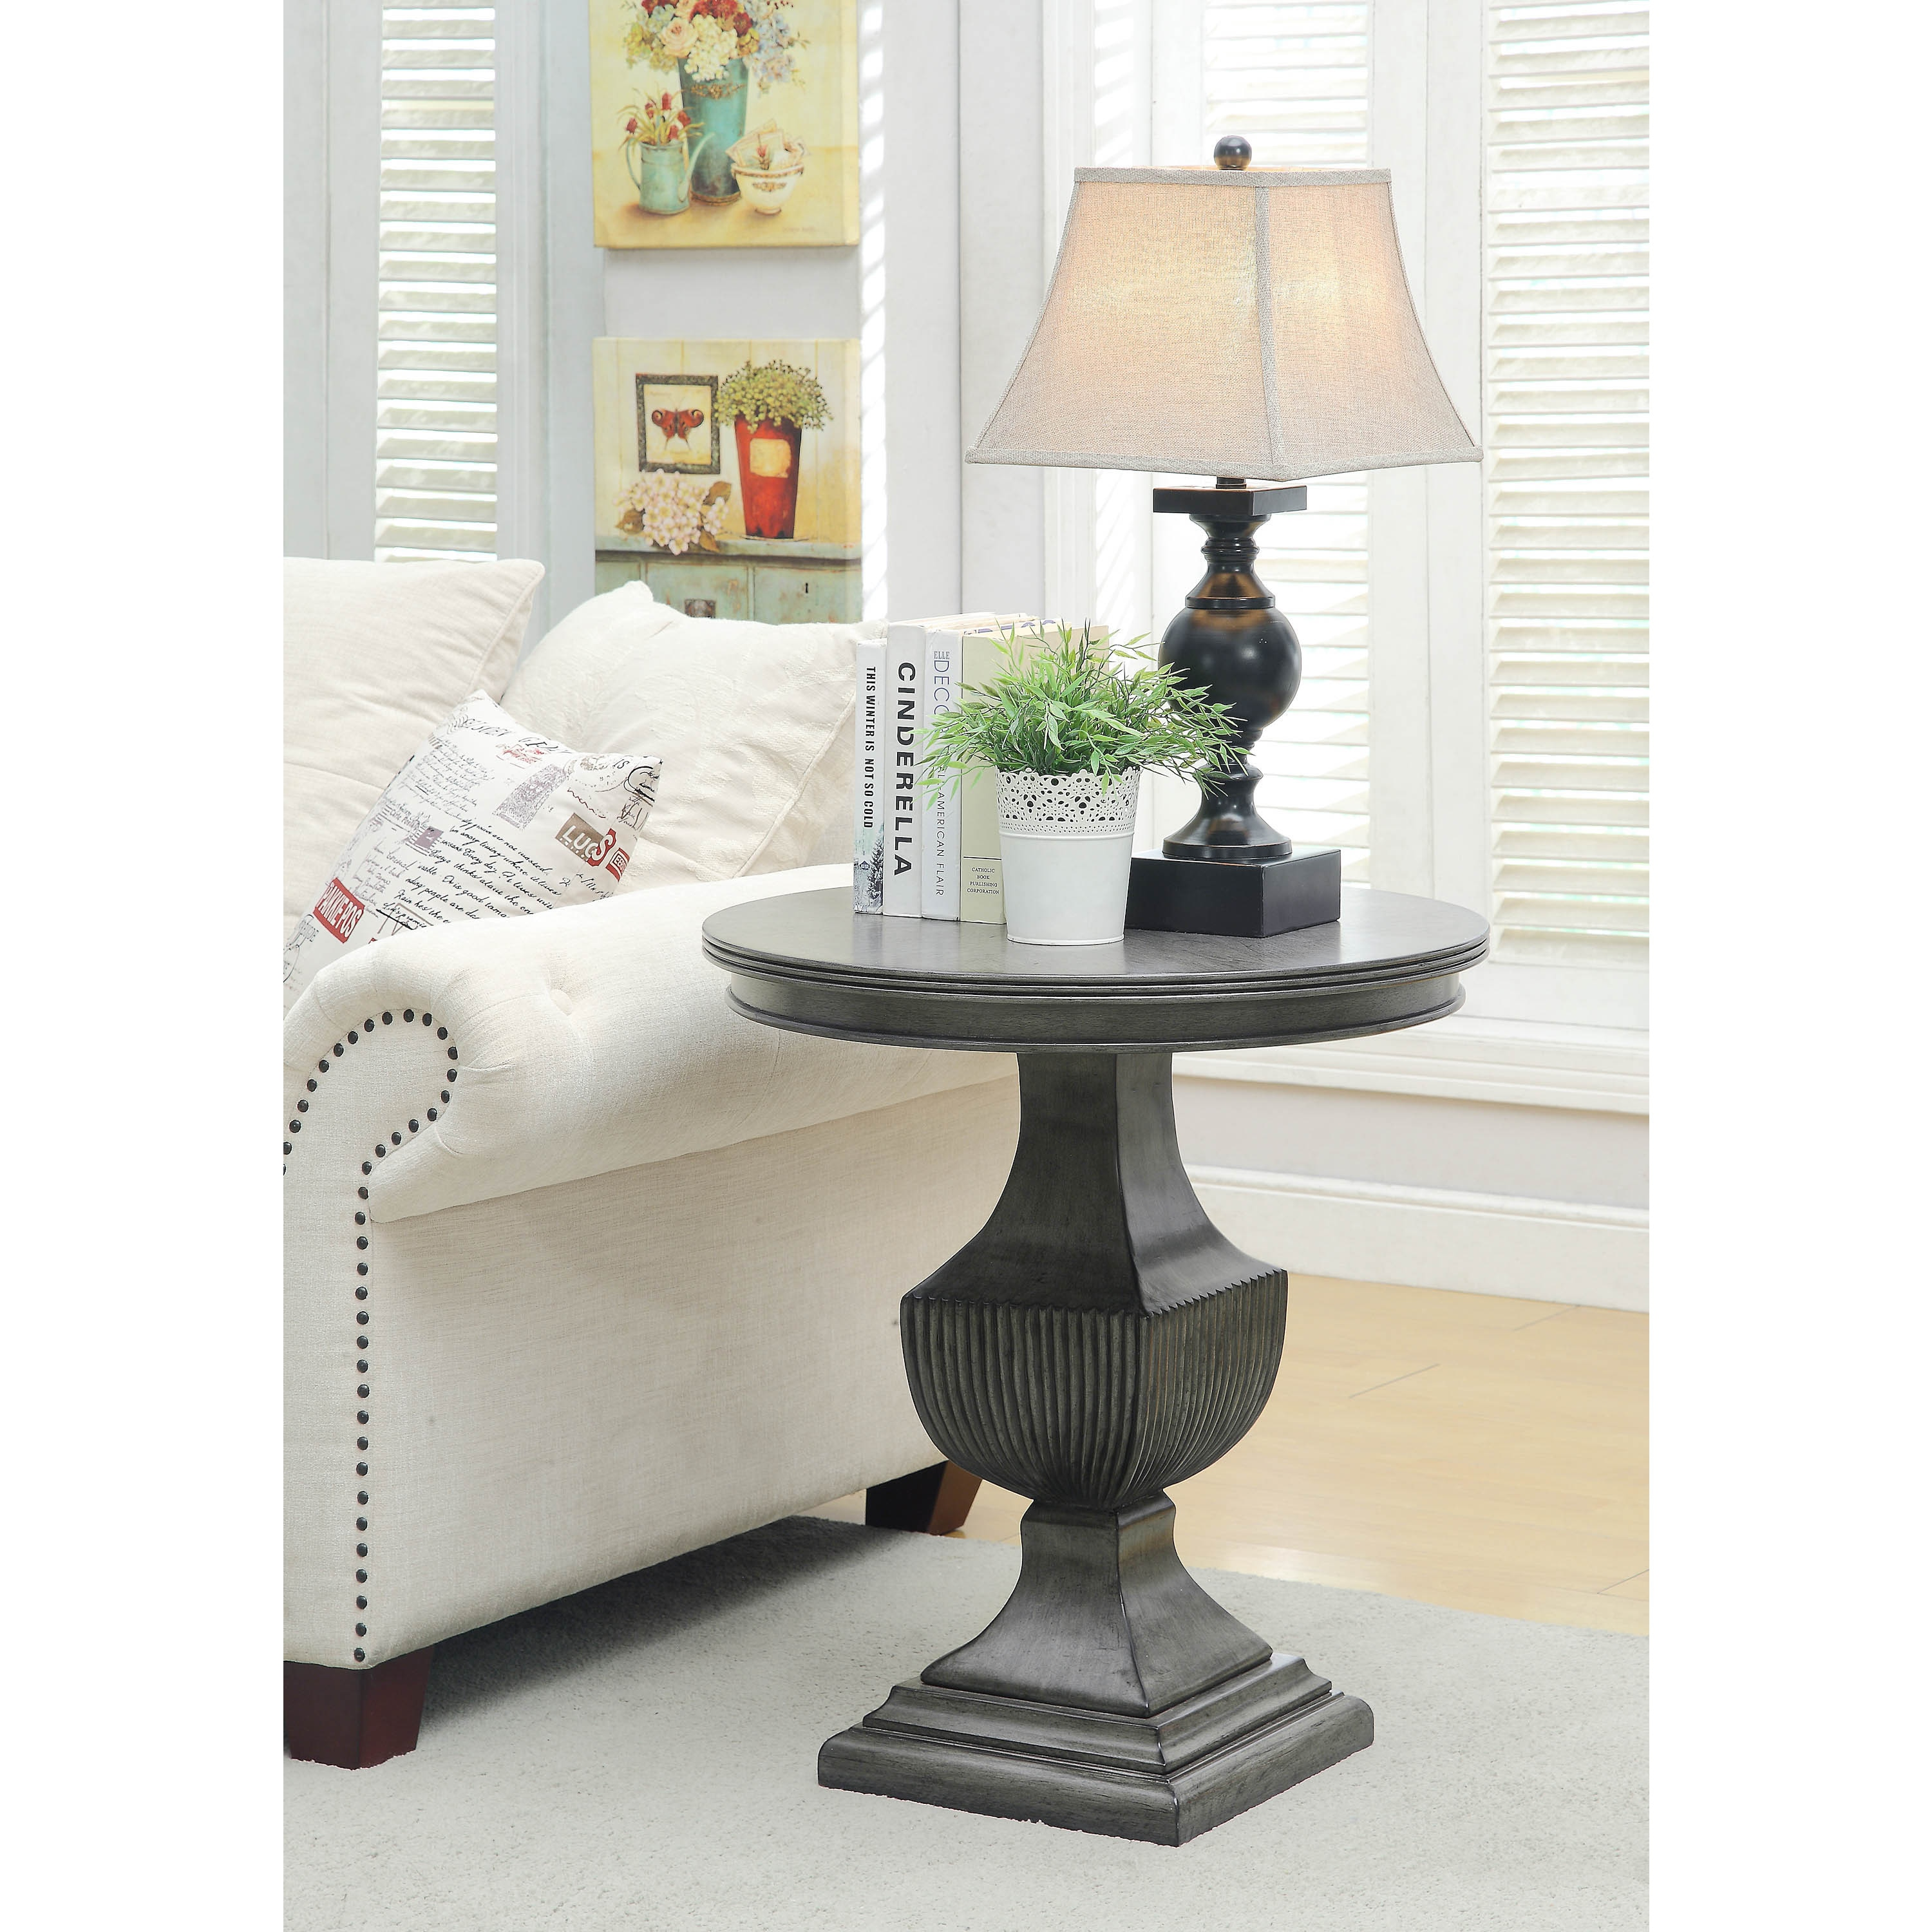 somette burnished grey round accent table free shipping today linens mini end carpet reducer furry chair target nautical bar lights tiffany leadlight lamps pier one cushions